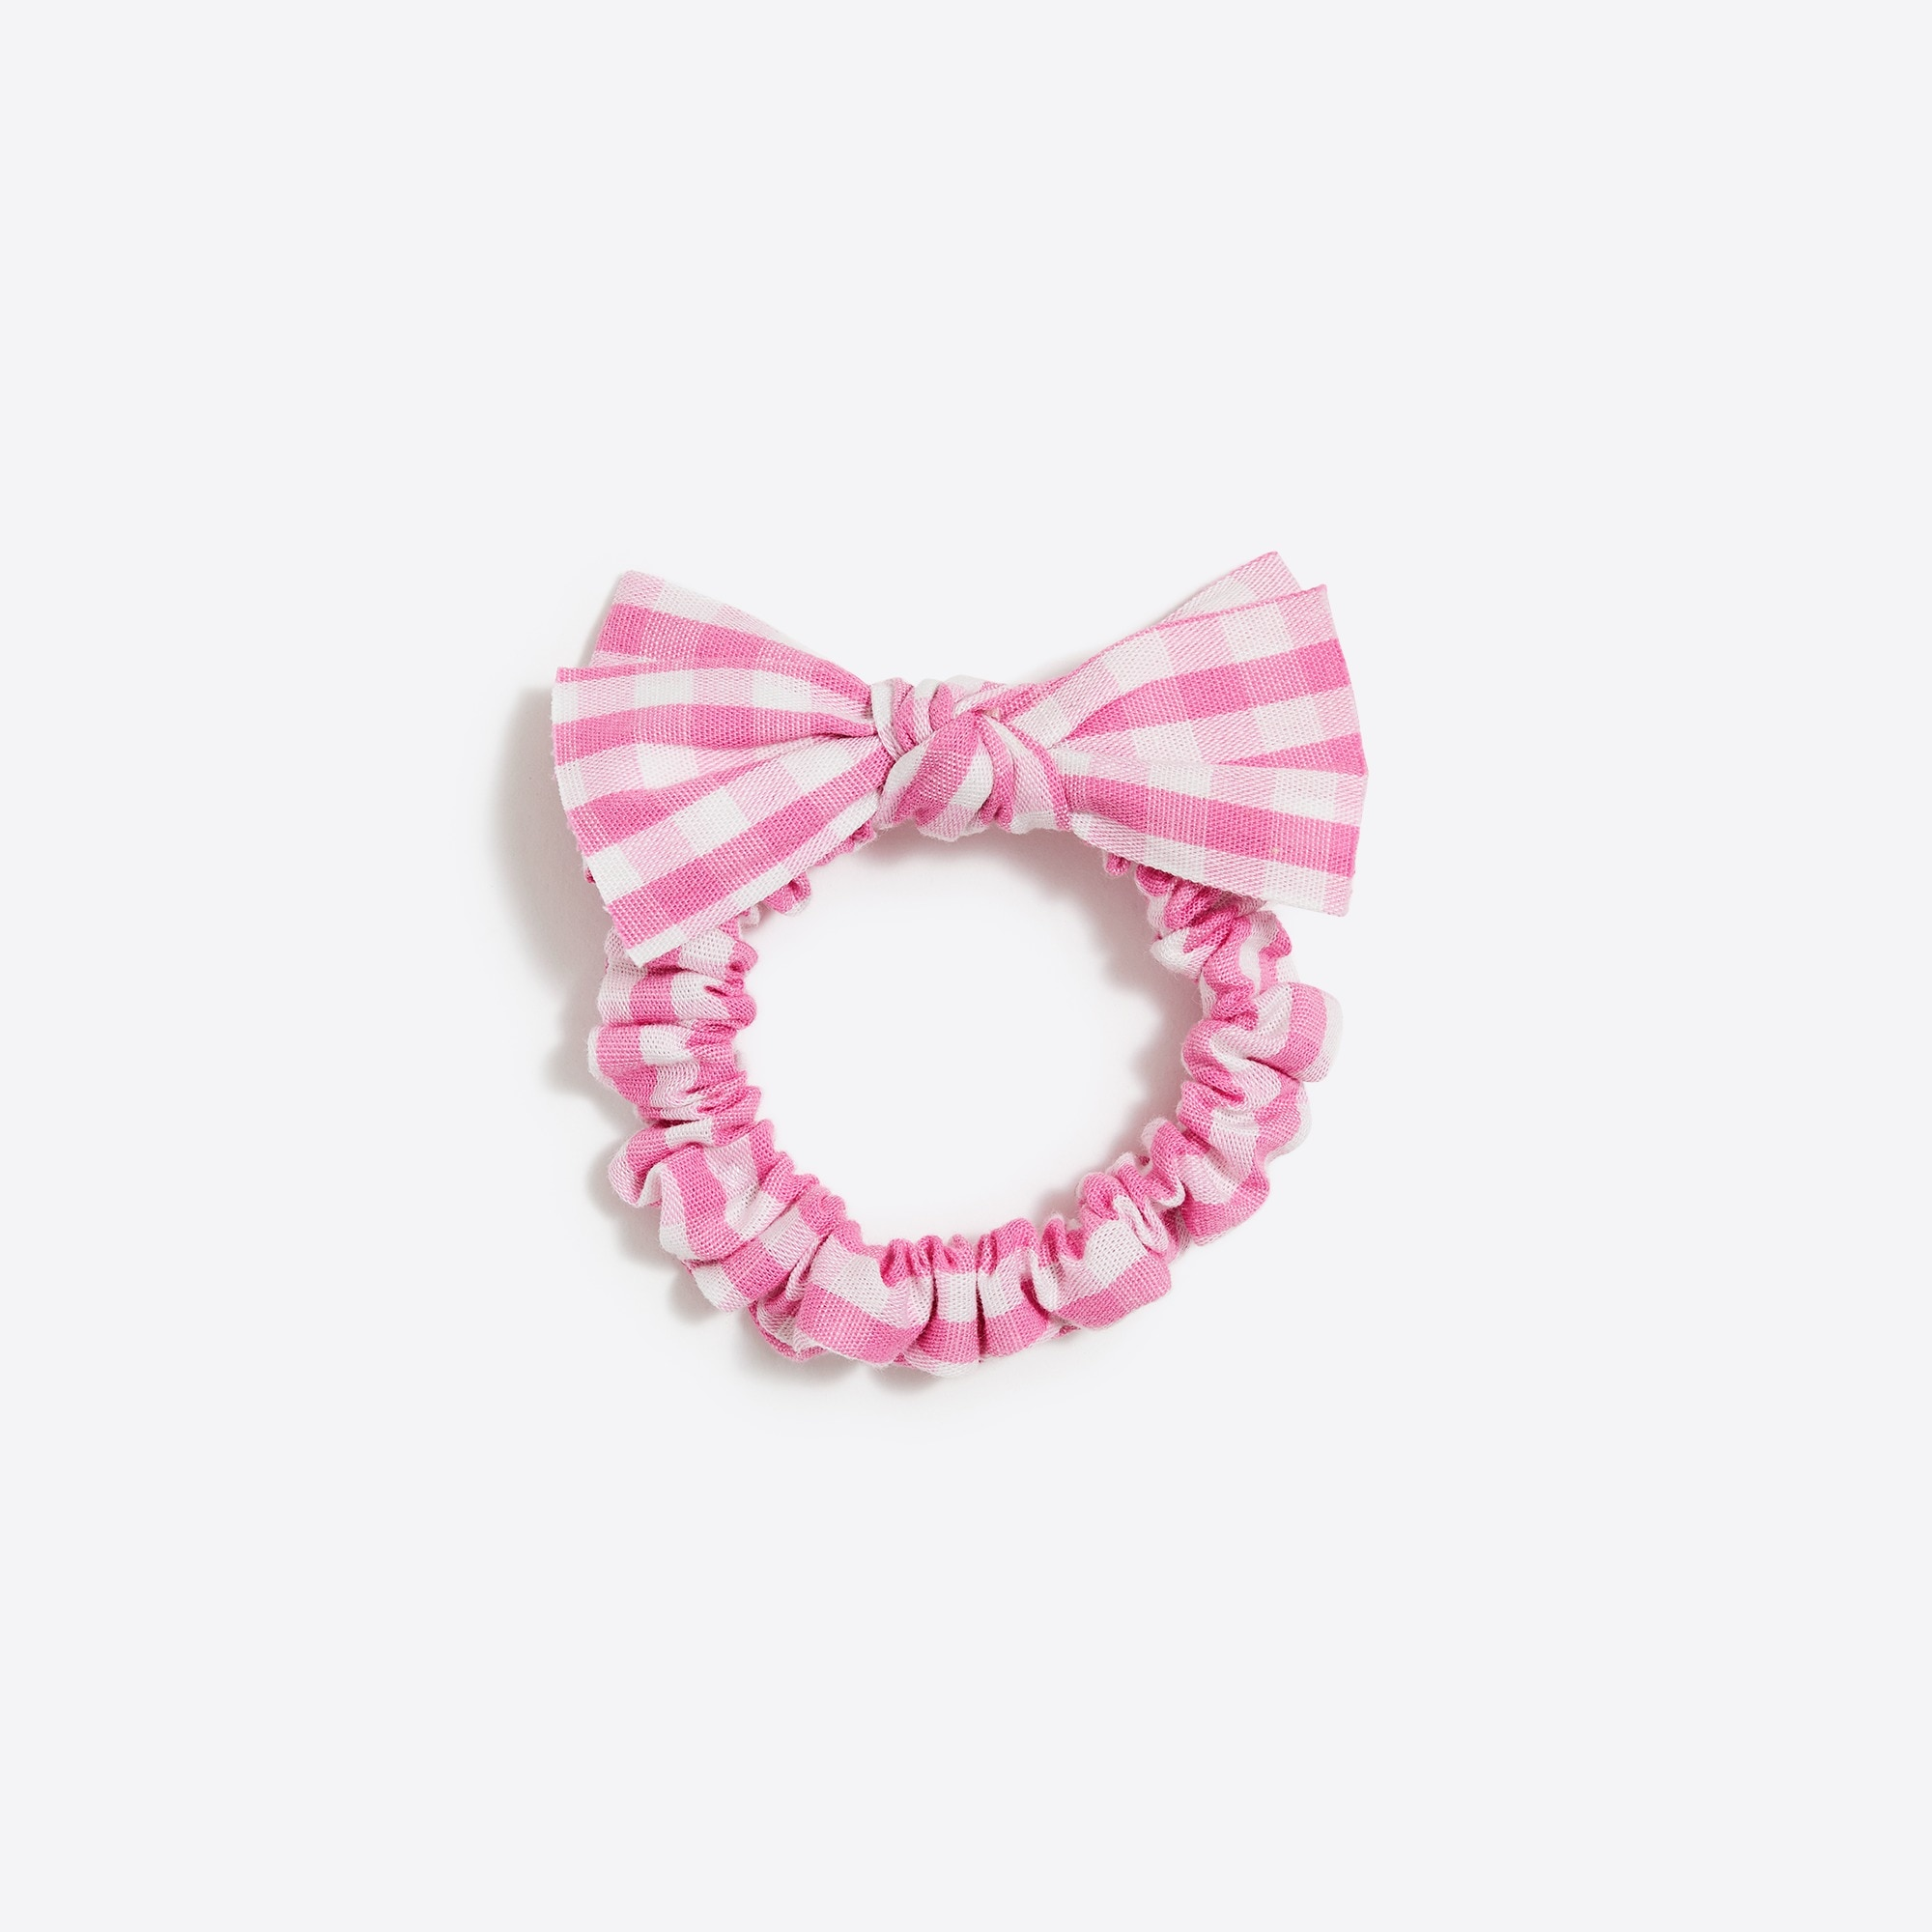 Bow-top scrunchie factorygirls jewelry & accessories c